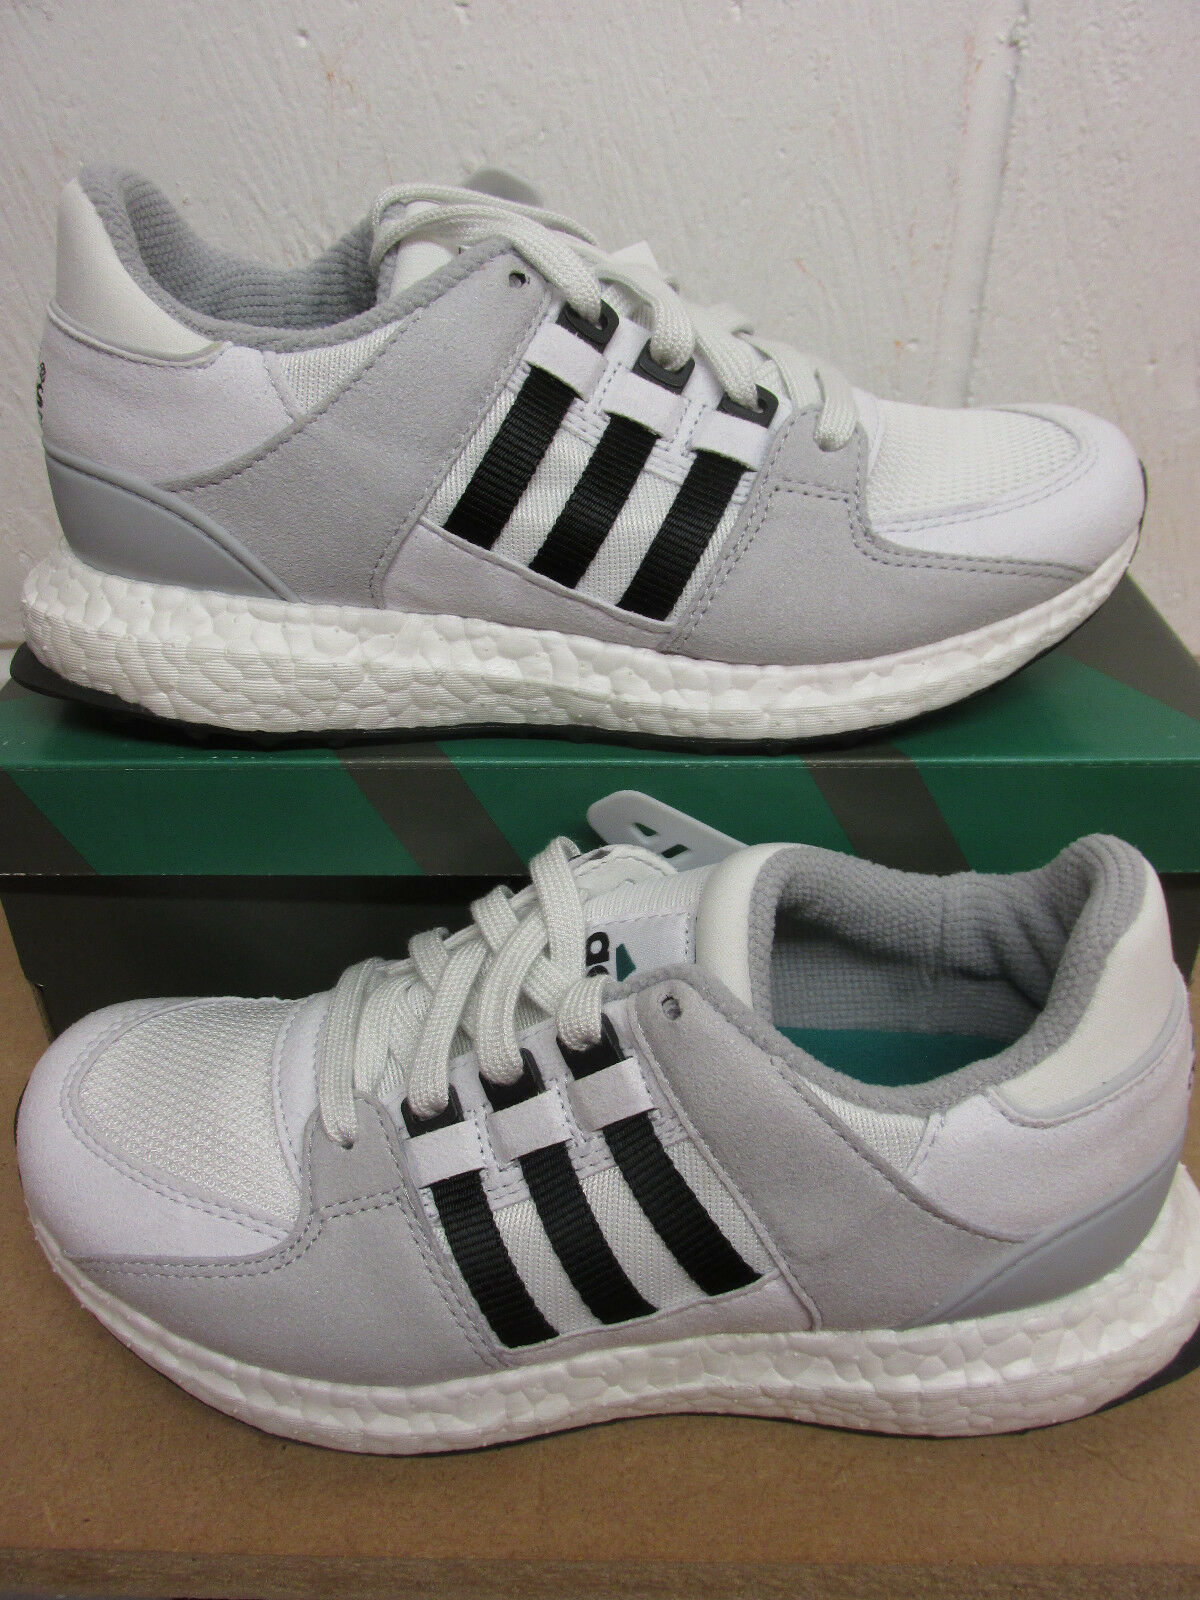 Adidas Originals Equipment Supprt 93/16 Boost Running Trainers S79112 Sneakers